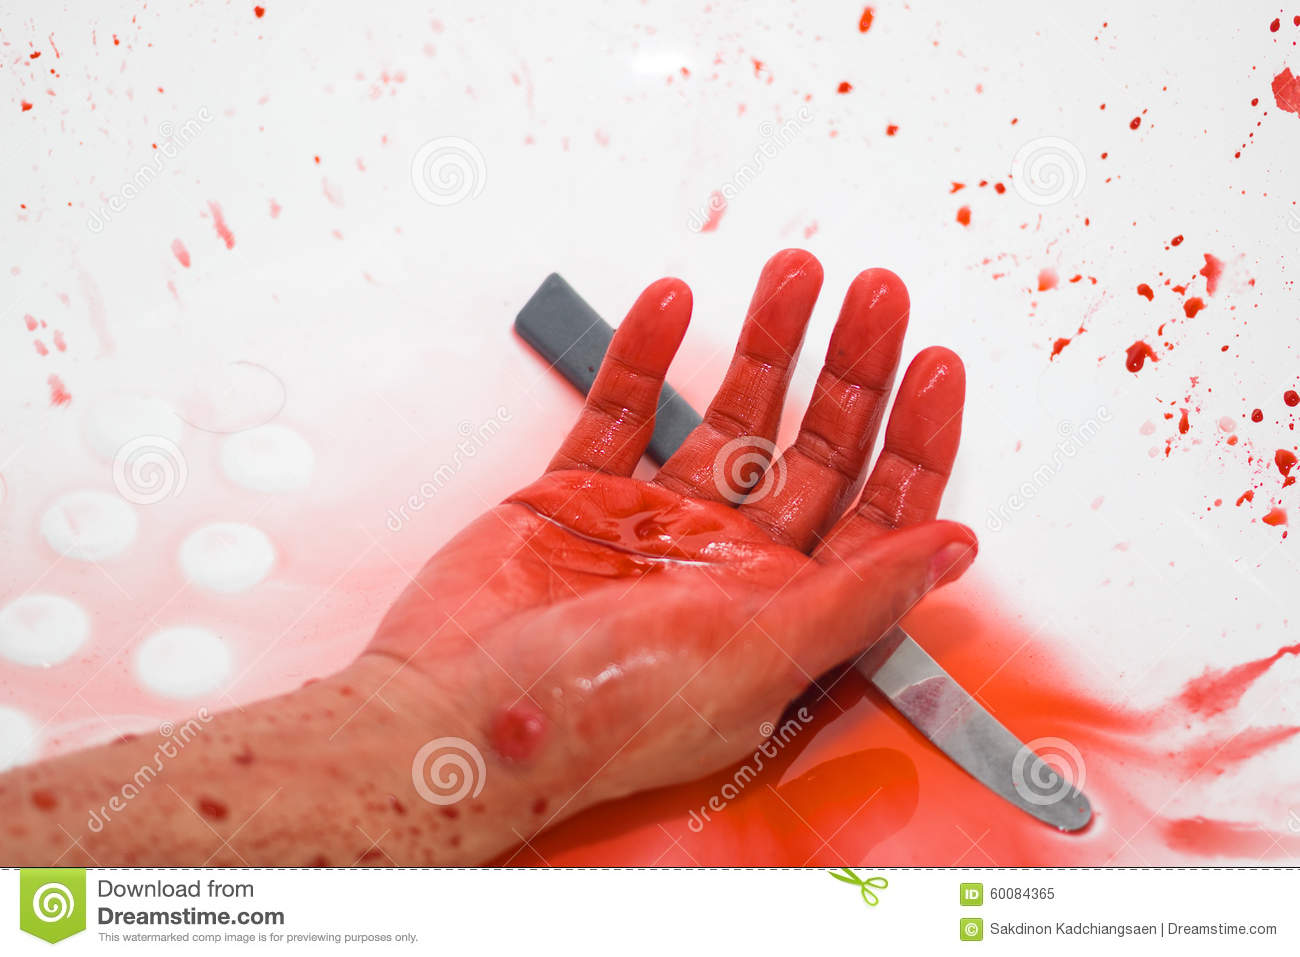 Photograph Of A Knife And It's Full With Blood Stock Image ...